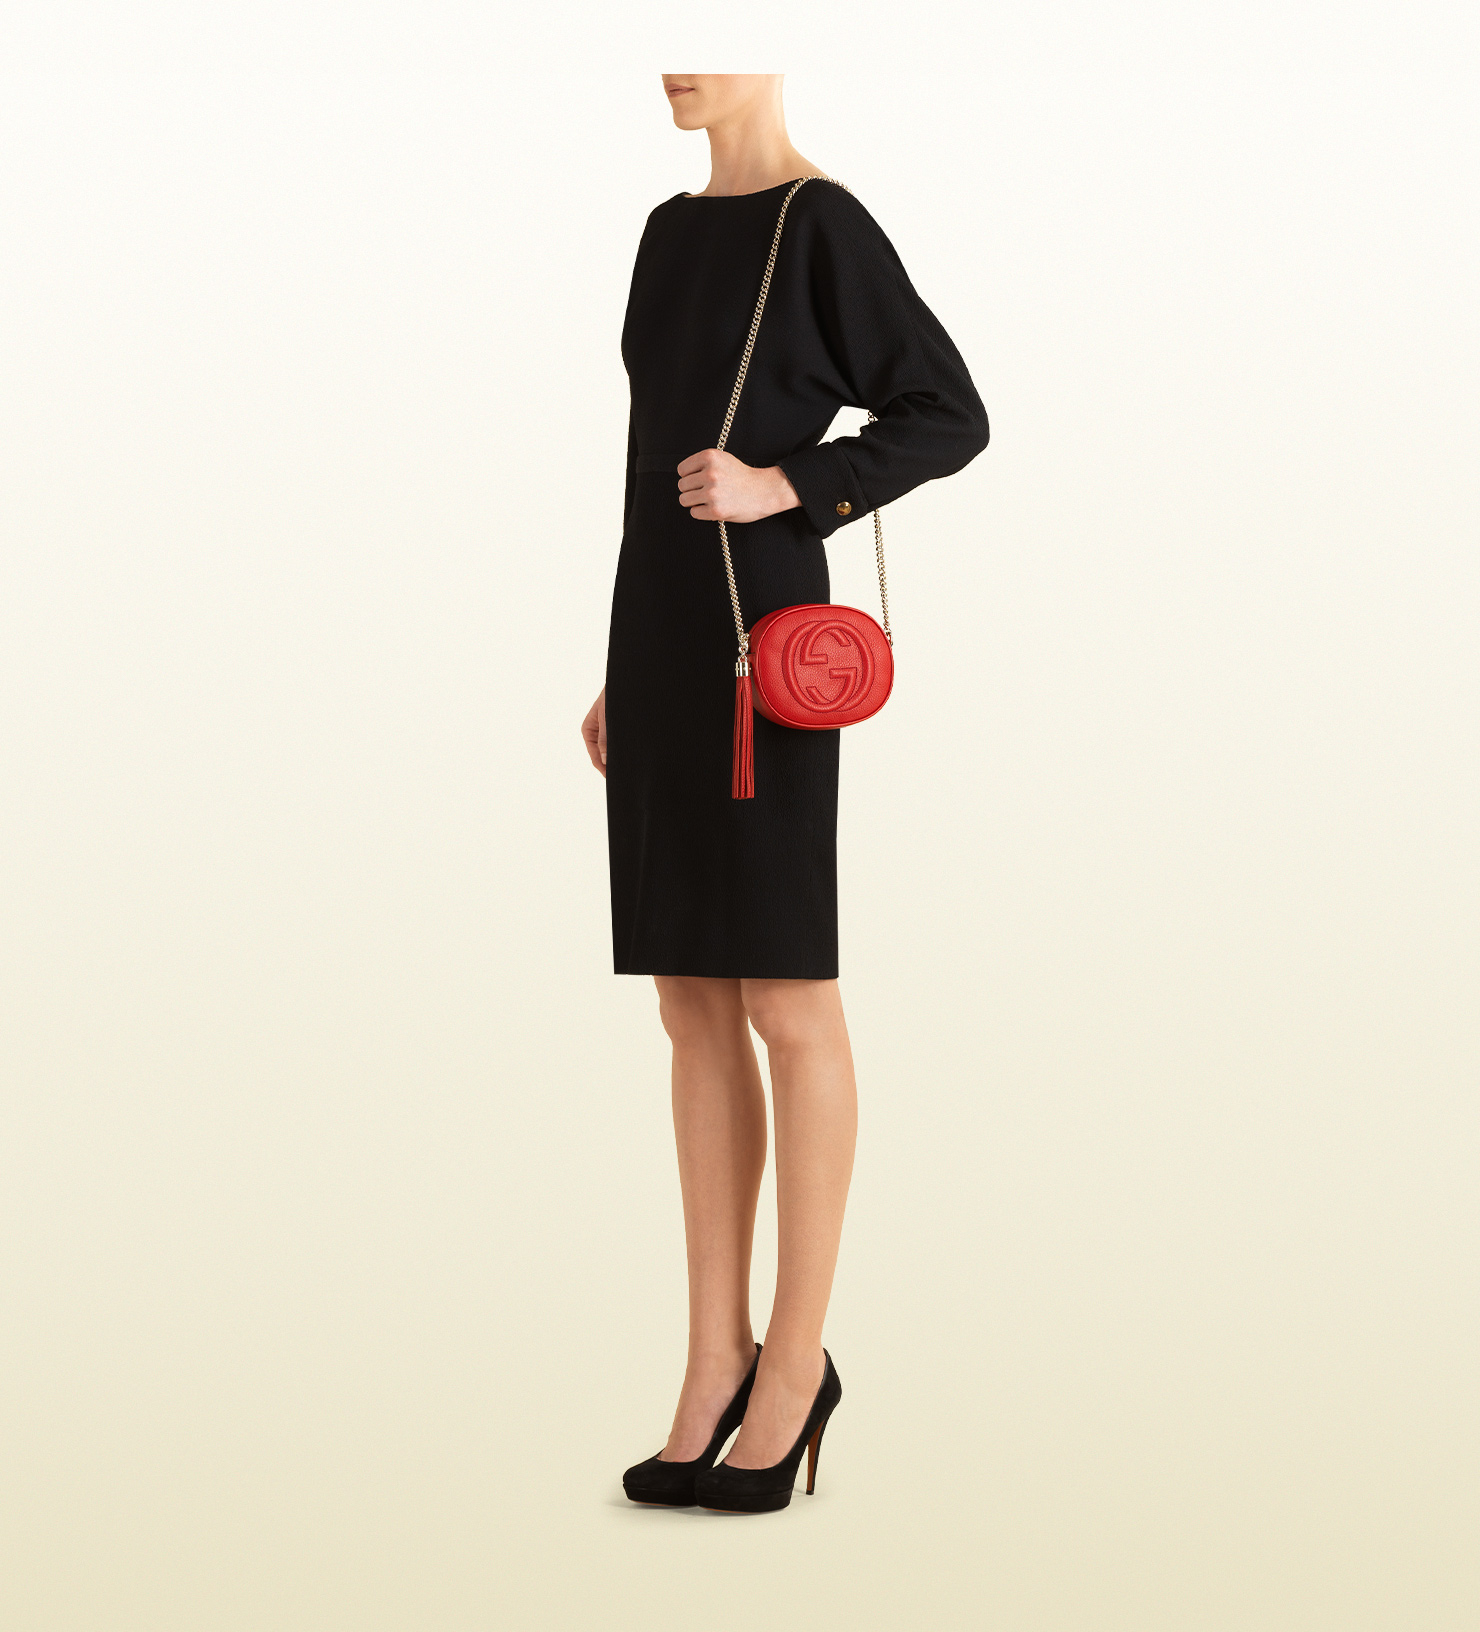 ccc30a17bb6a Lyst - Gucci Soho Leather Mini Chain Bag in Red